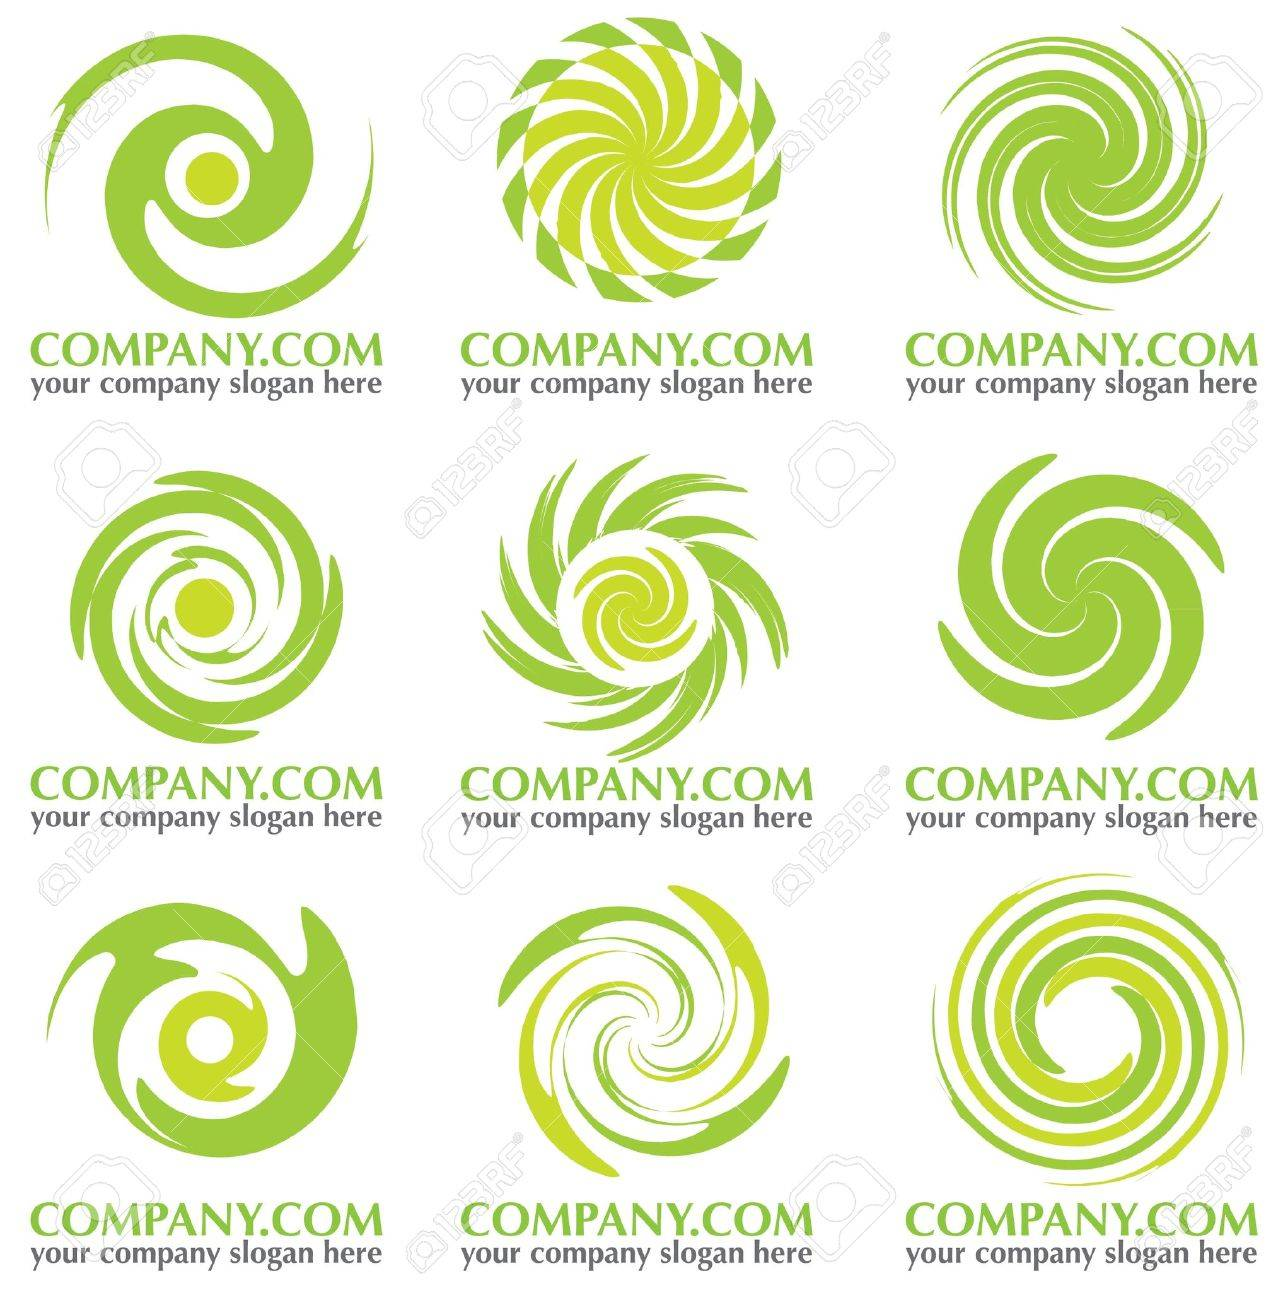 abstract rounded company icon Stock Vector - 12847202